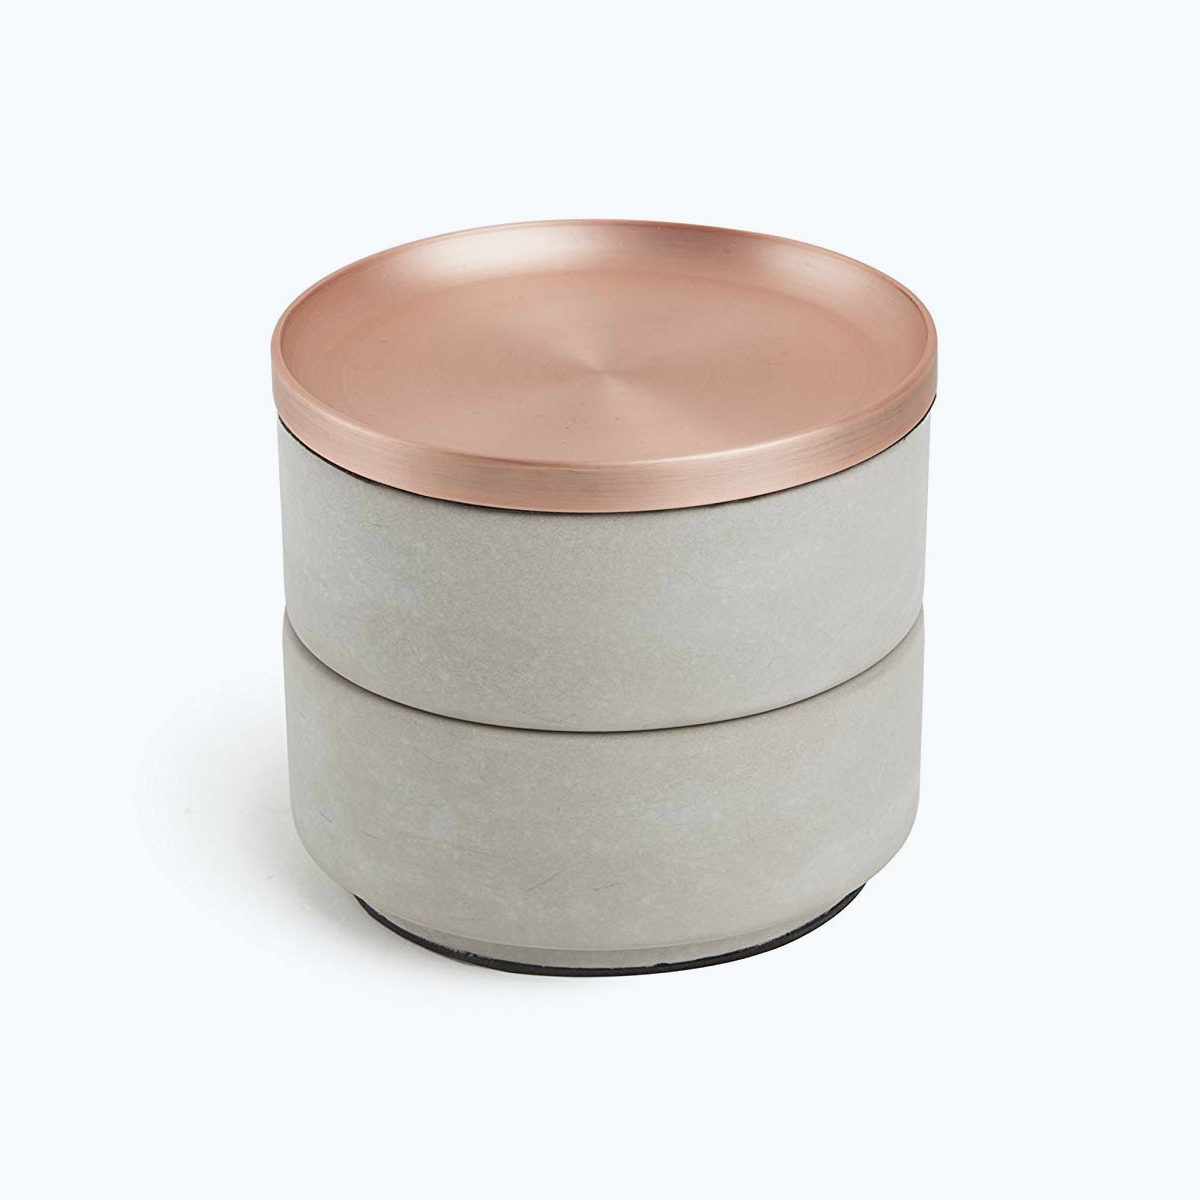 Tesora Concrete Jewelry Box